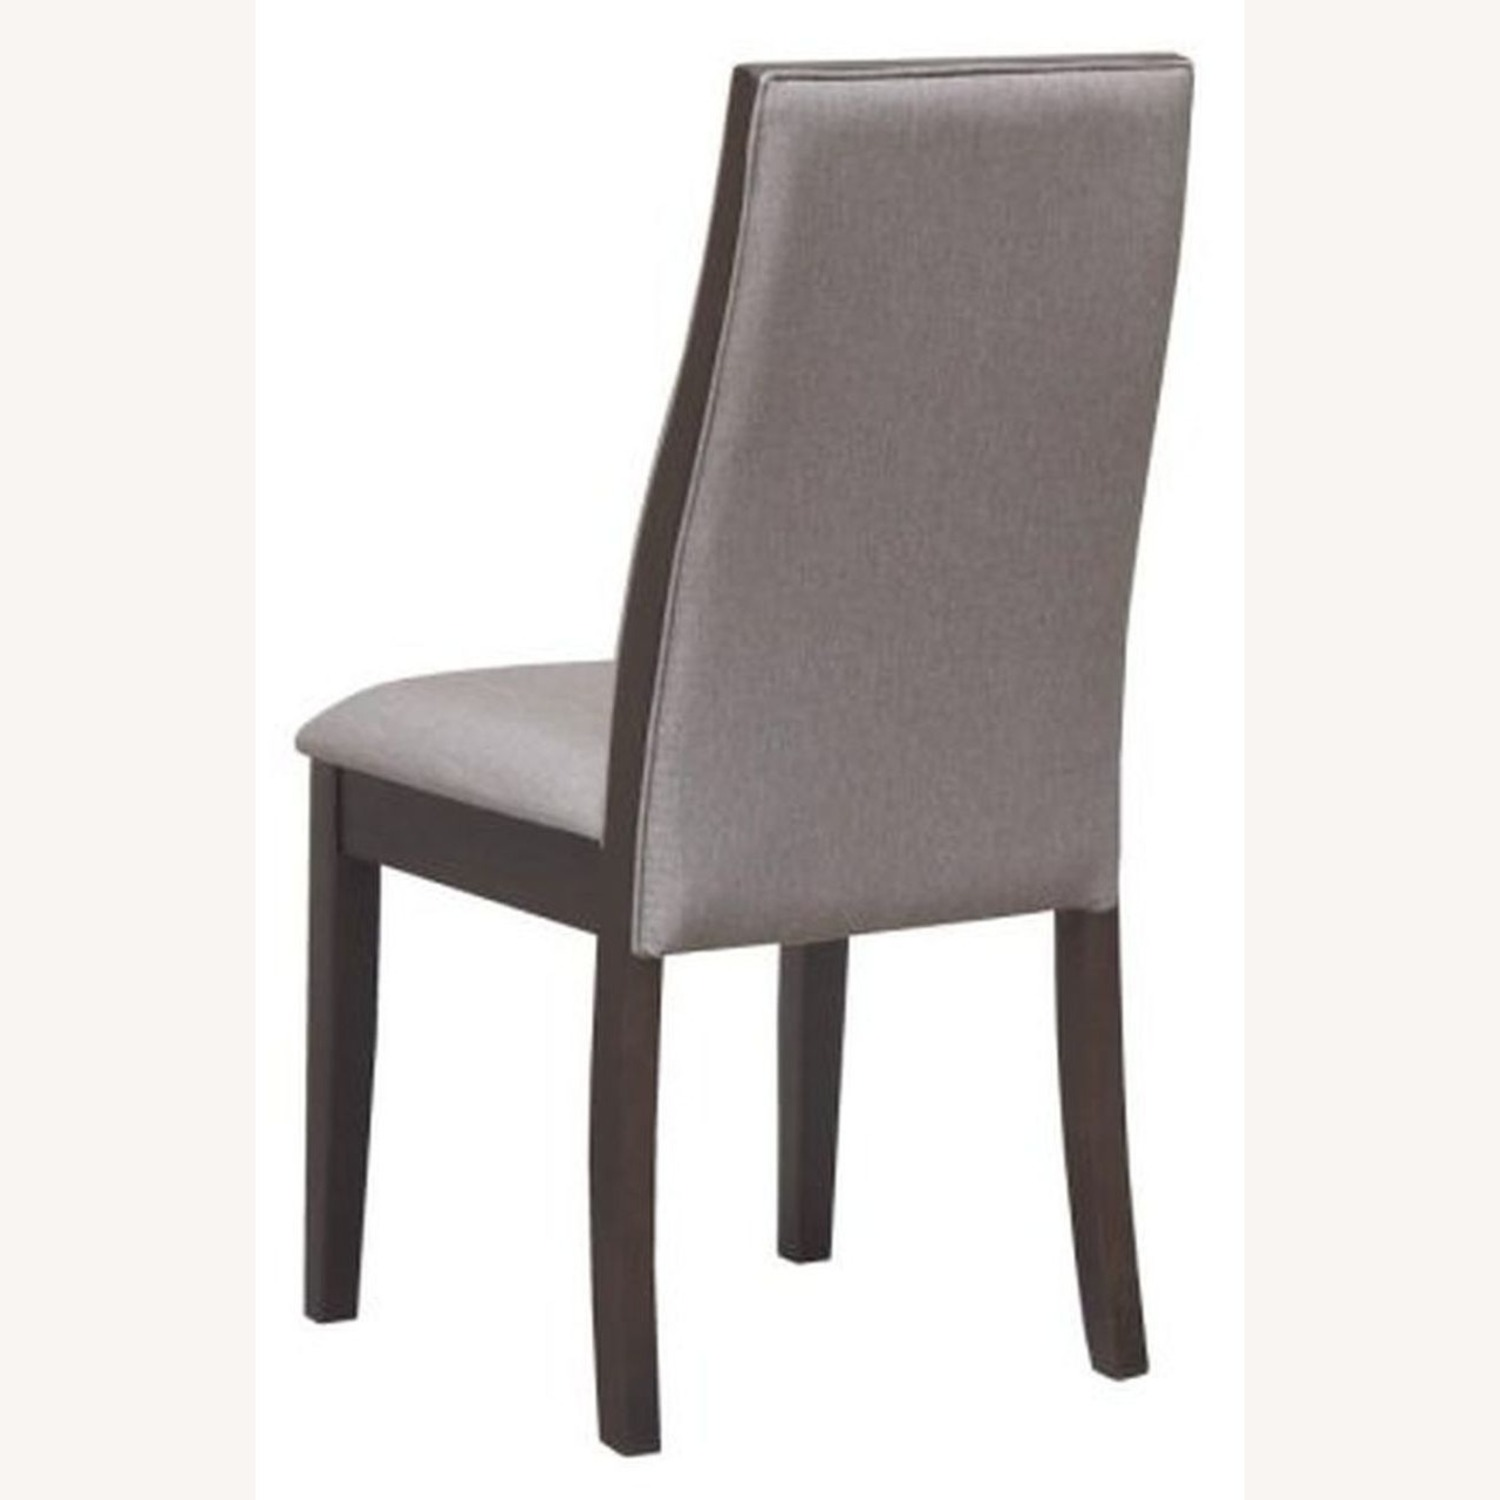 Dining Chair In Grey Fabric & Espresso Wood Finish - image-3